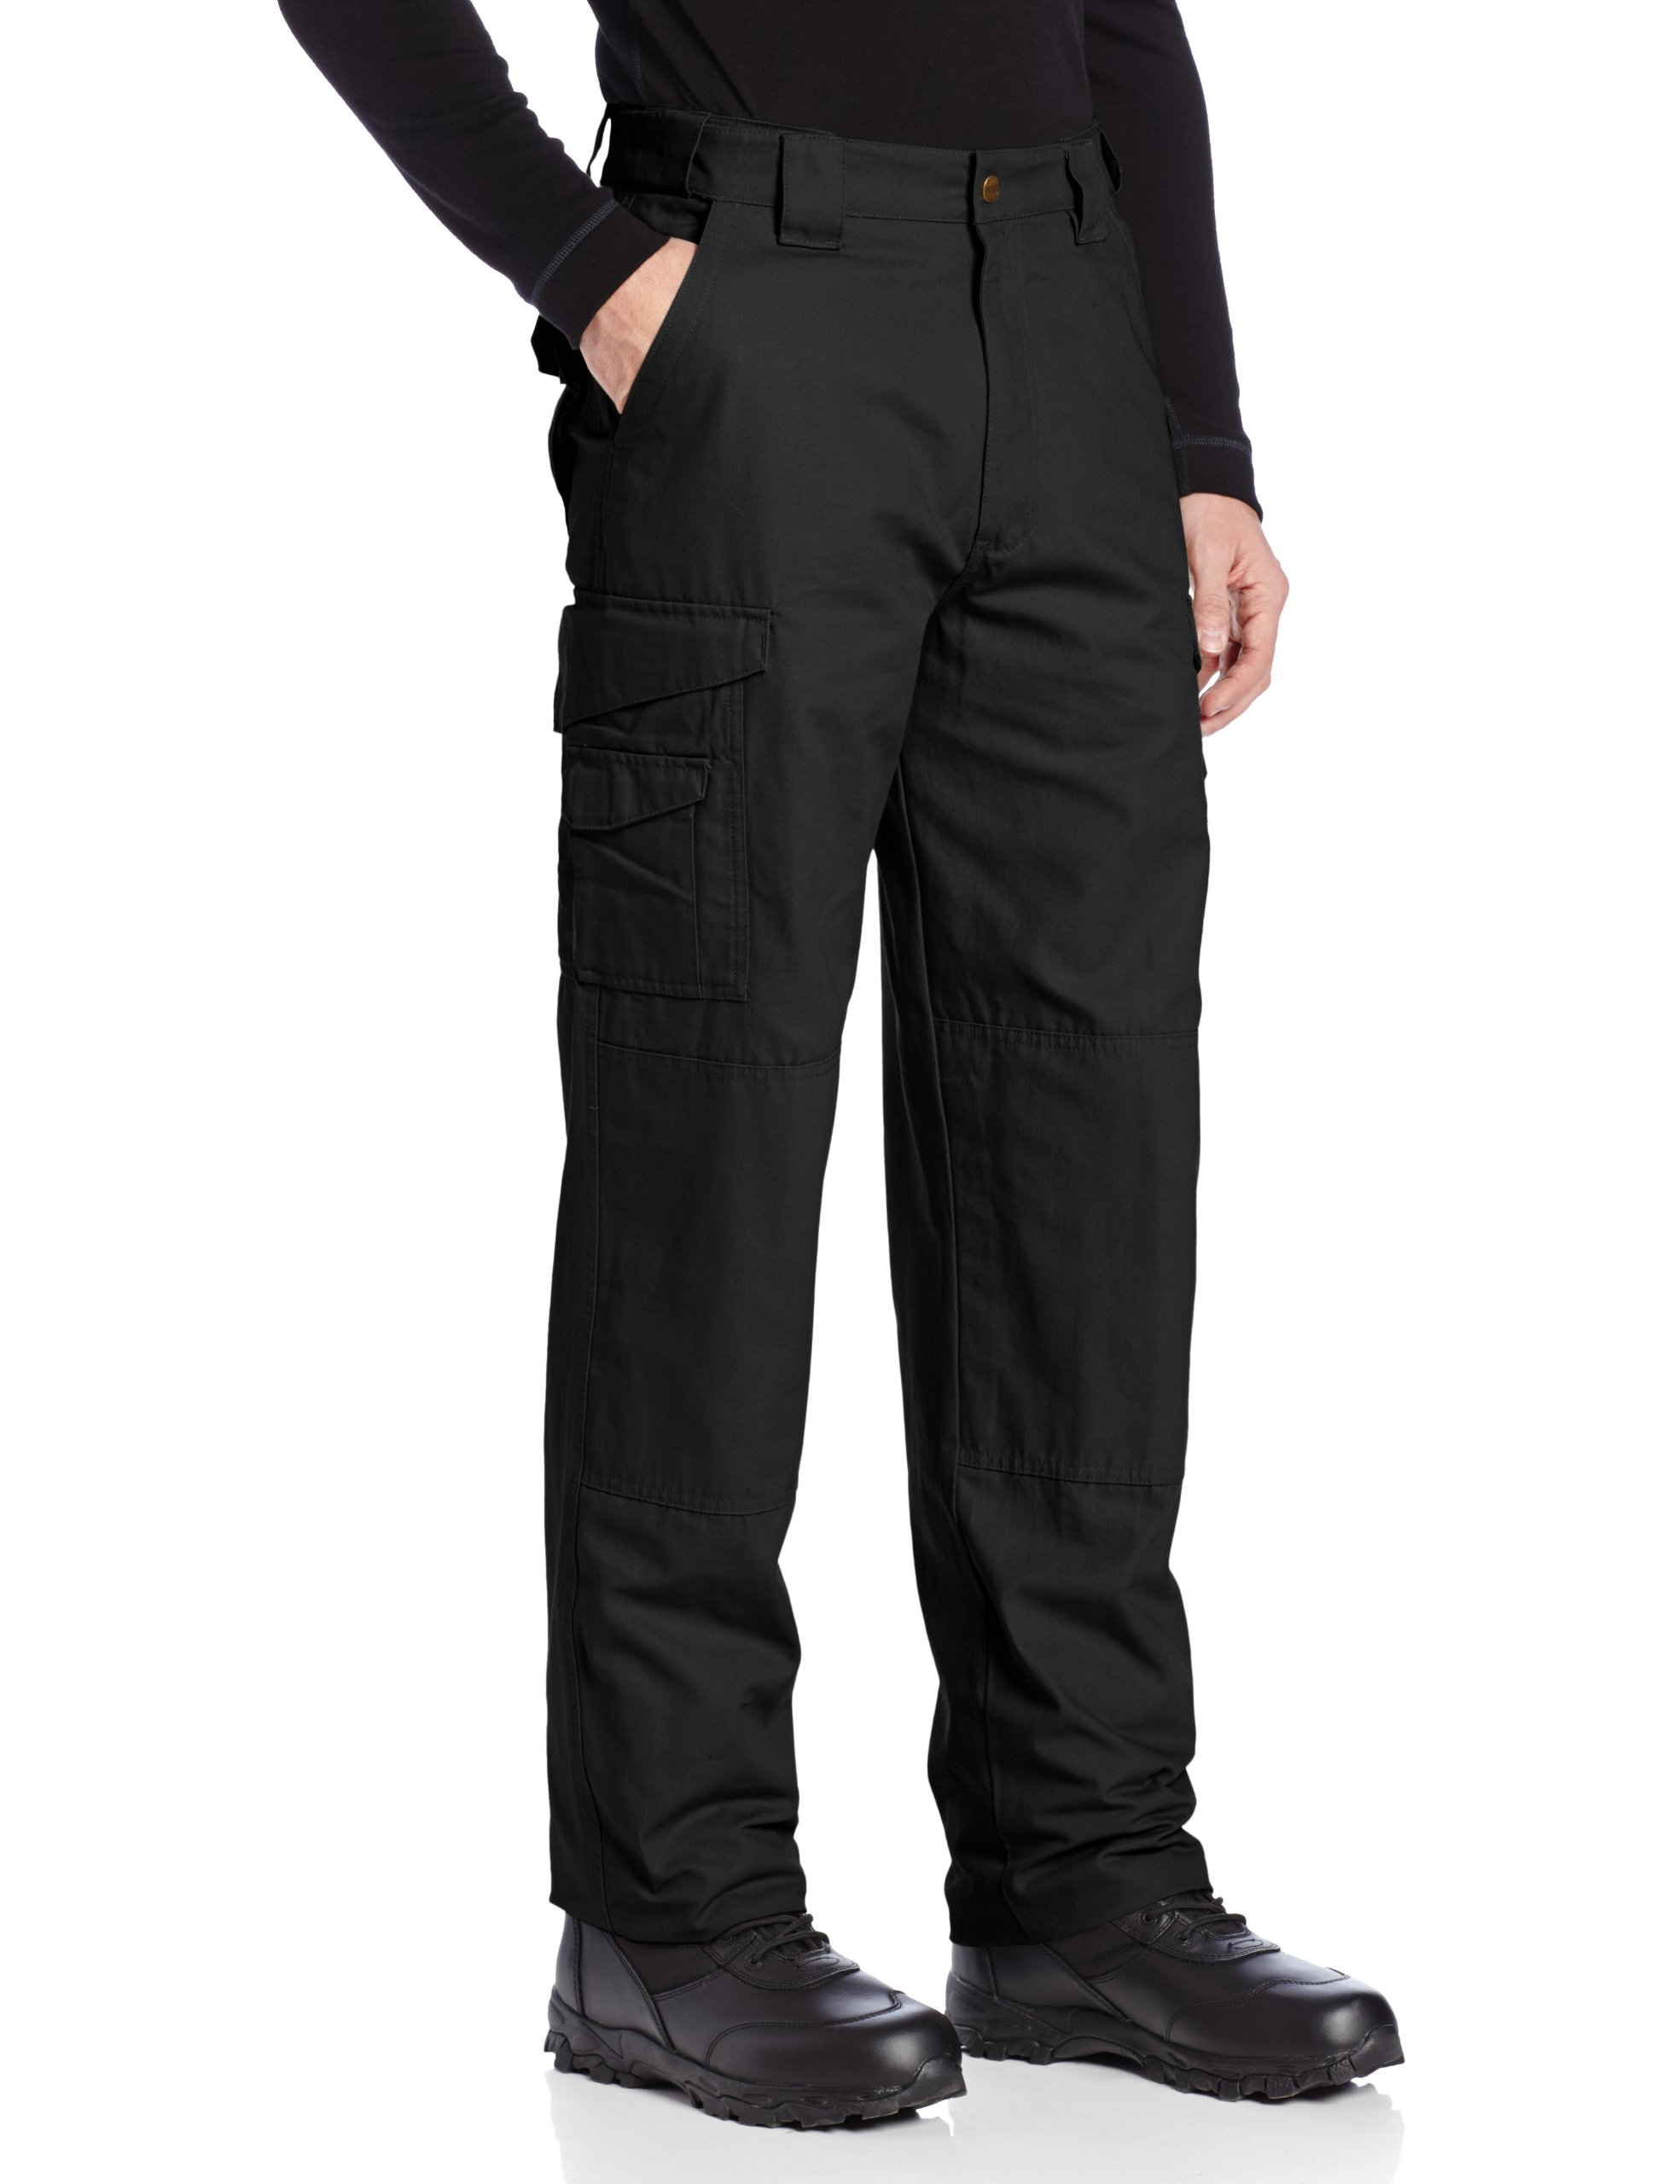 Tru-Spec Men's 24-7 Series Original Tactical Pant